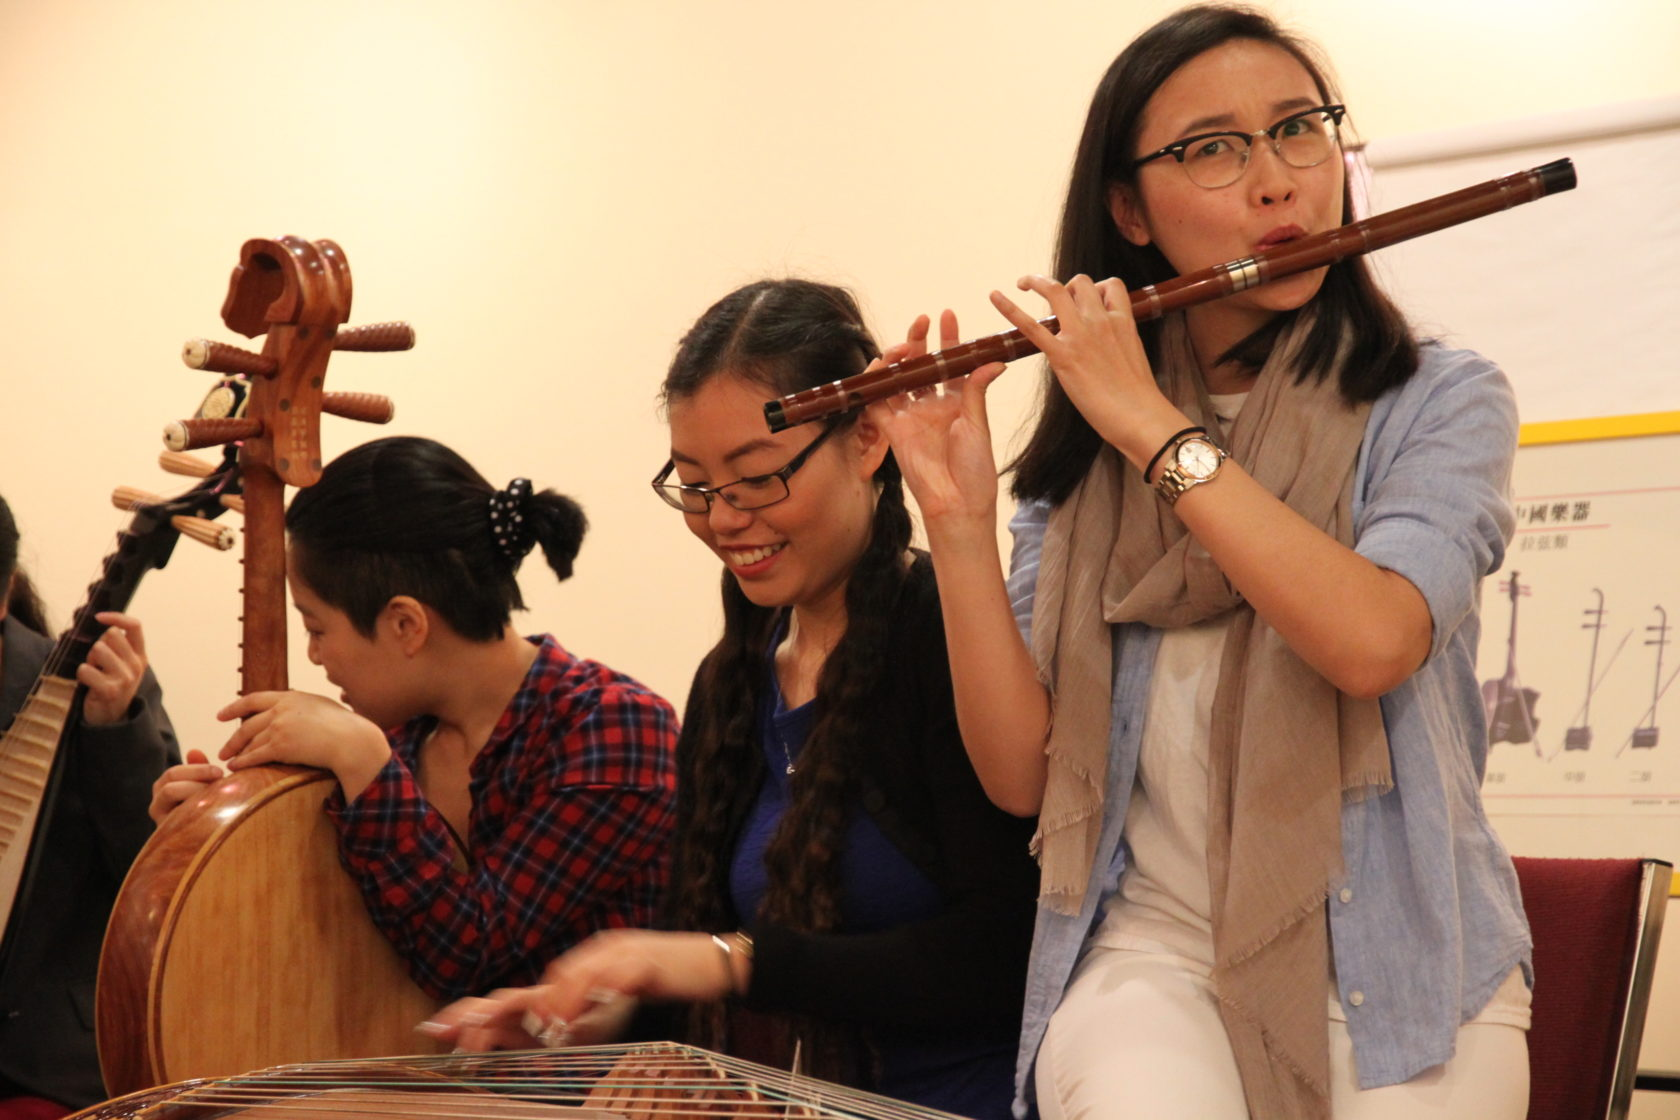 Youths play chinese insurements